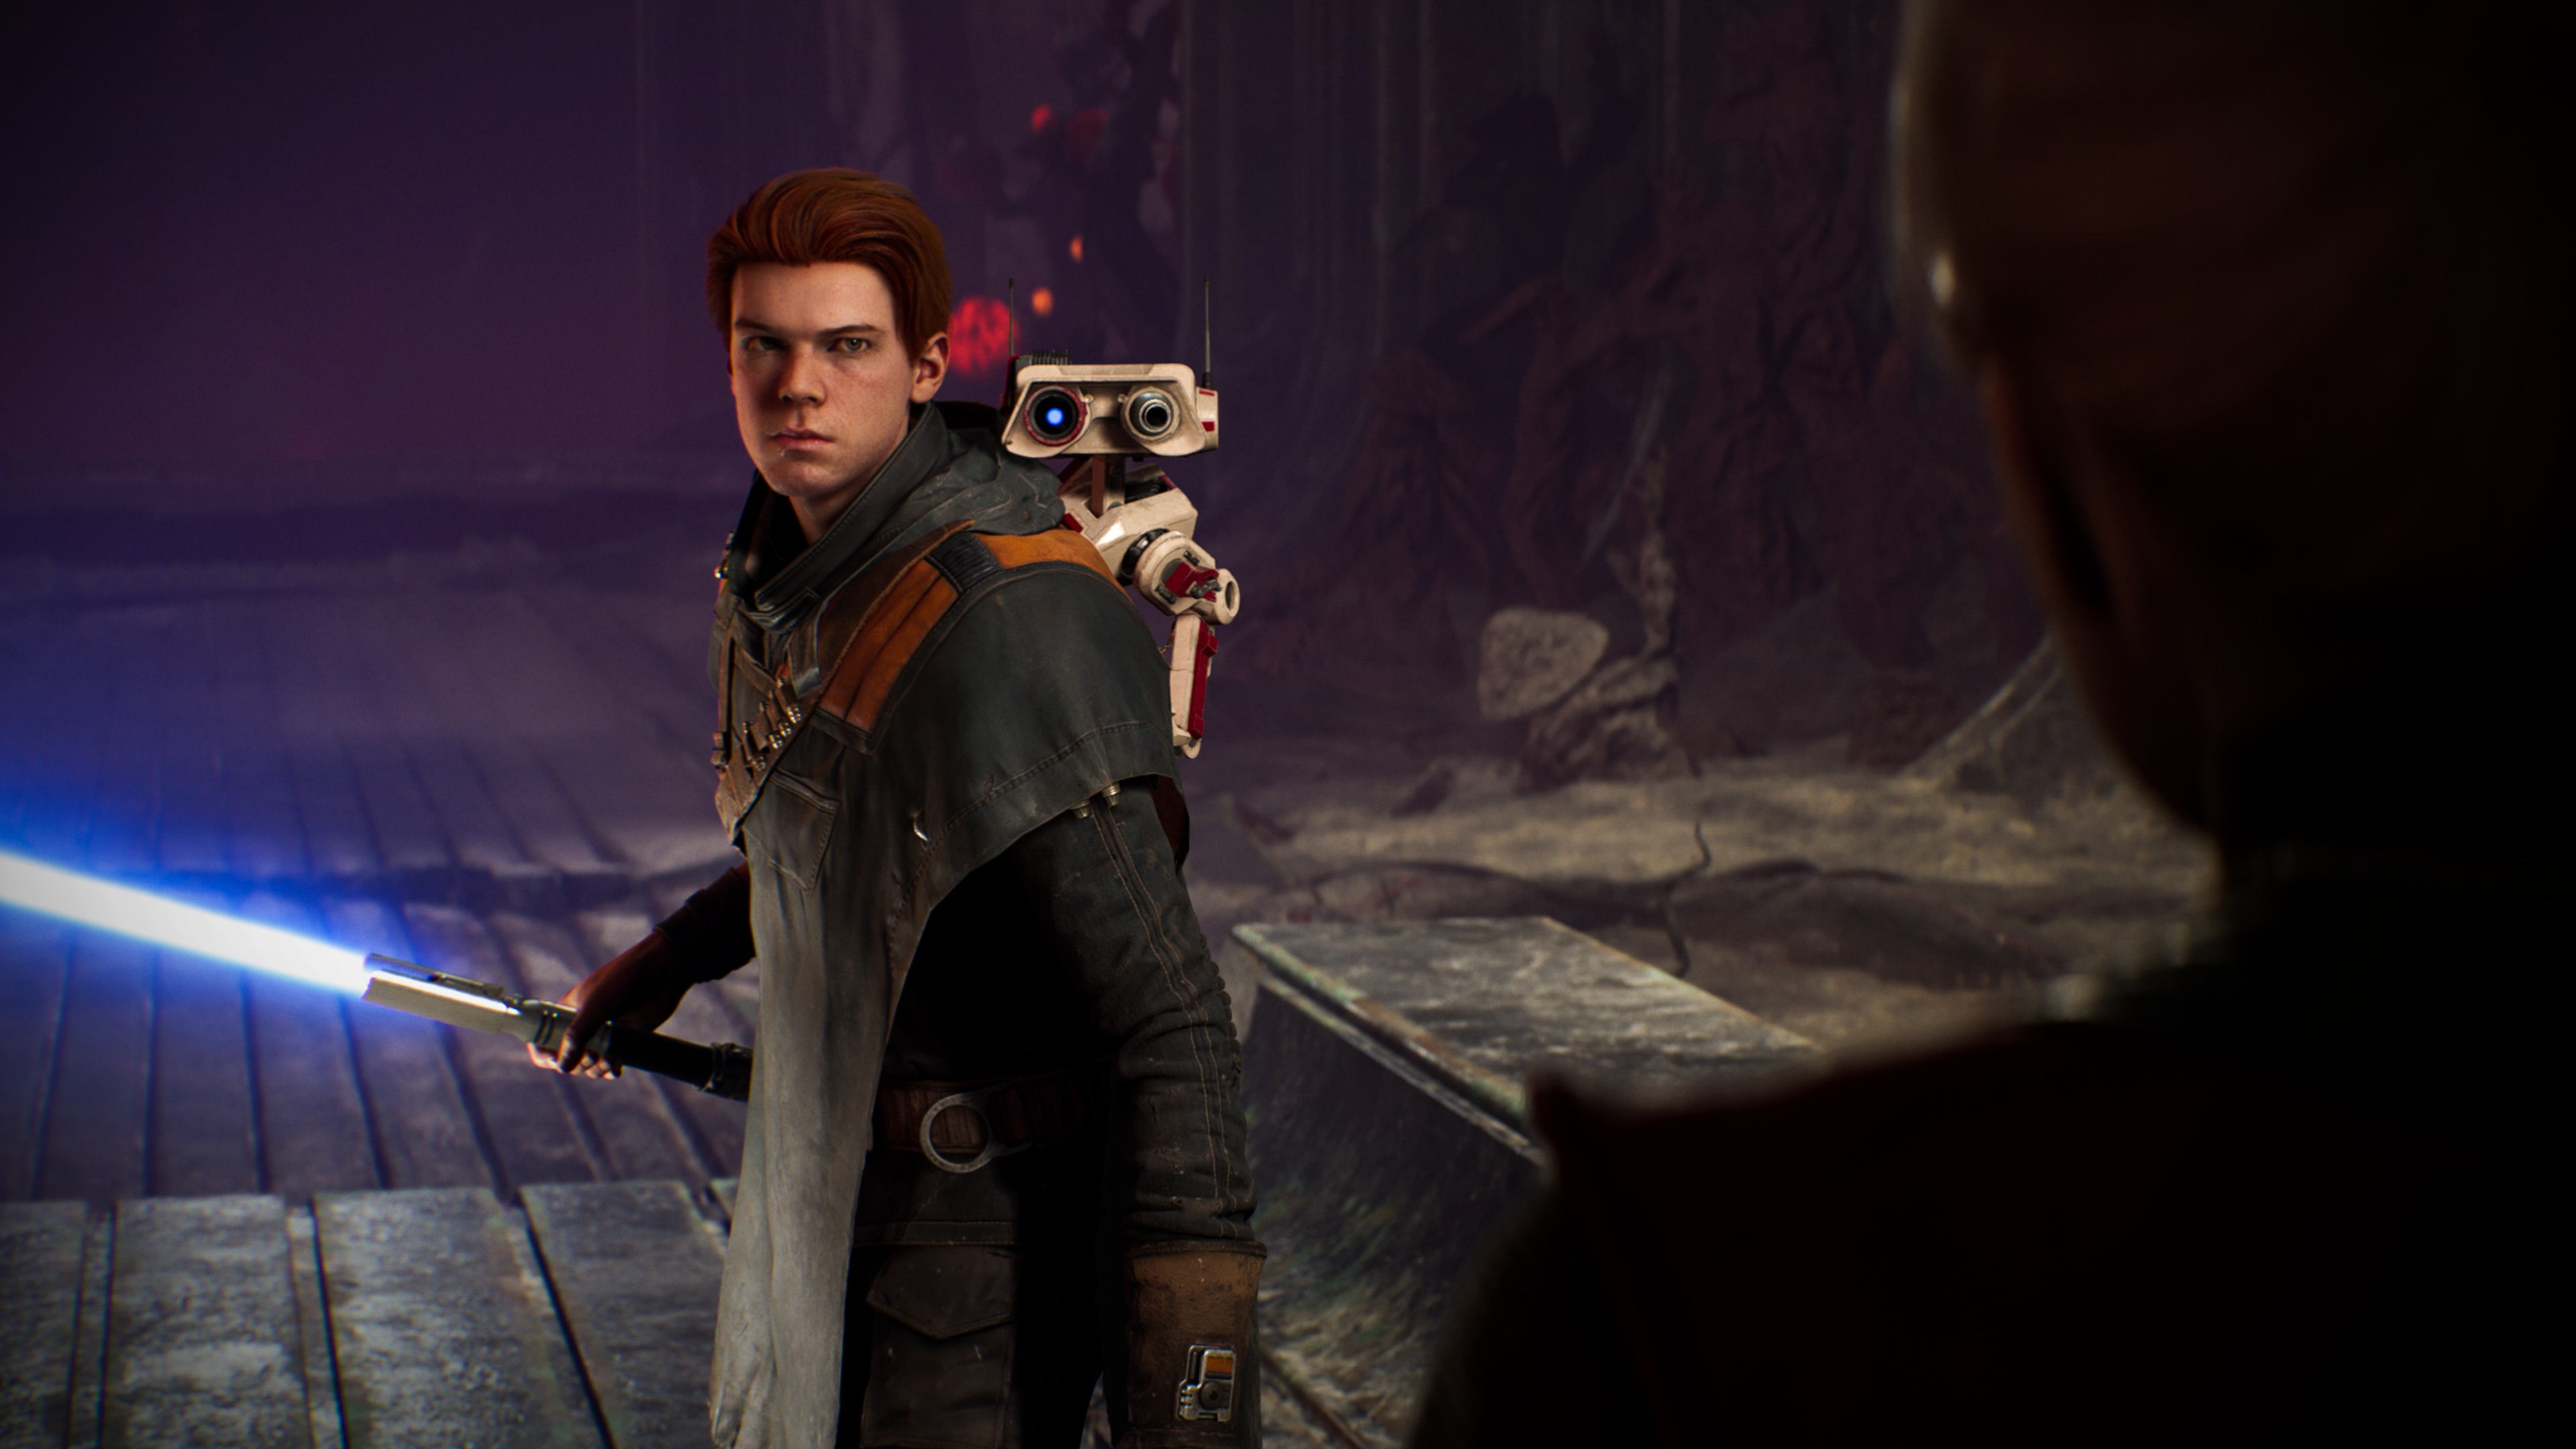 Star Wars Jedi: Fallen Order Preview – The Force is Strong With This One